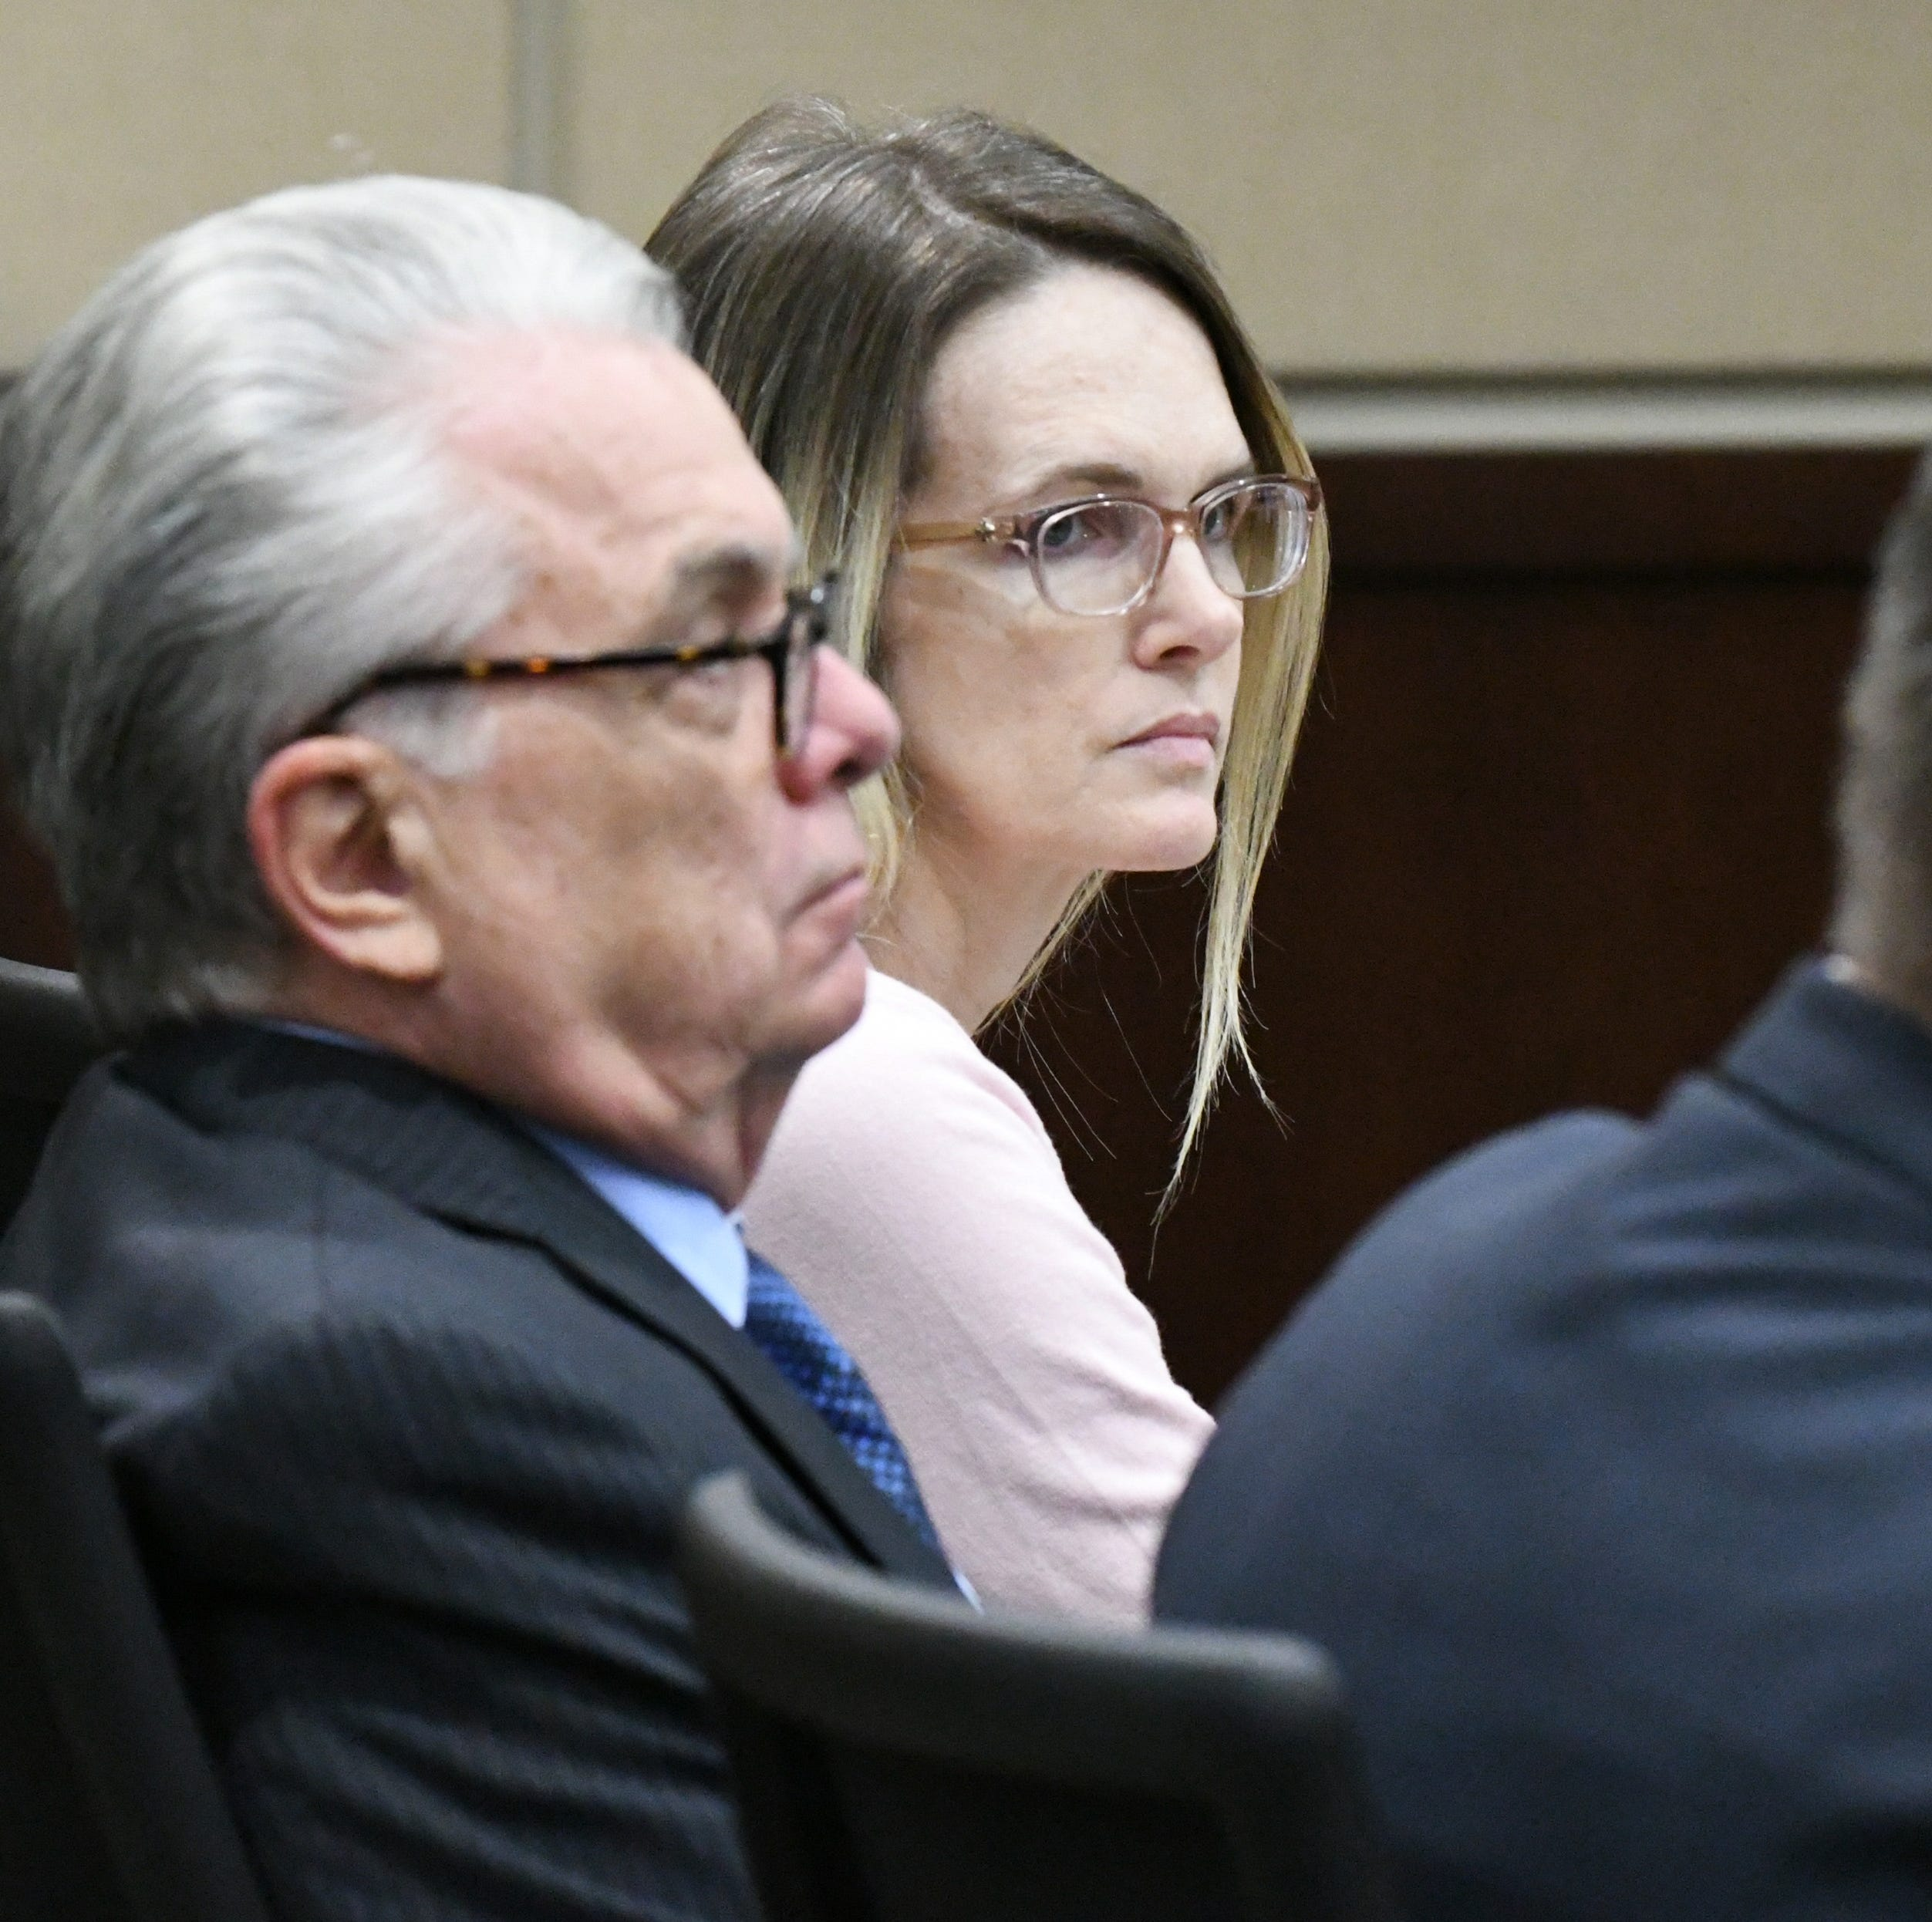 Mike Williams murder: Complete coverage of Day 1 of Denise Williams trial